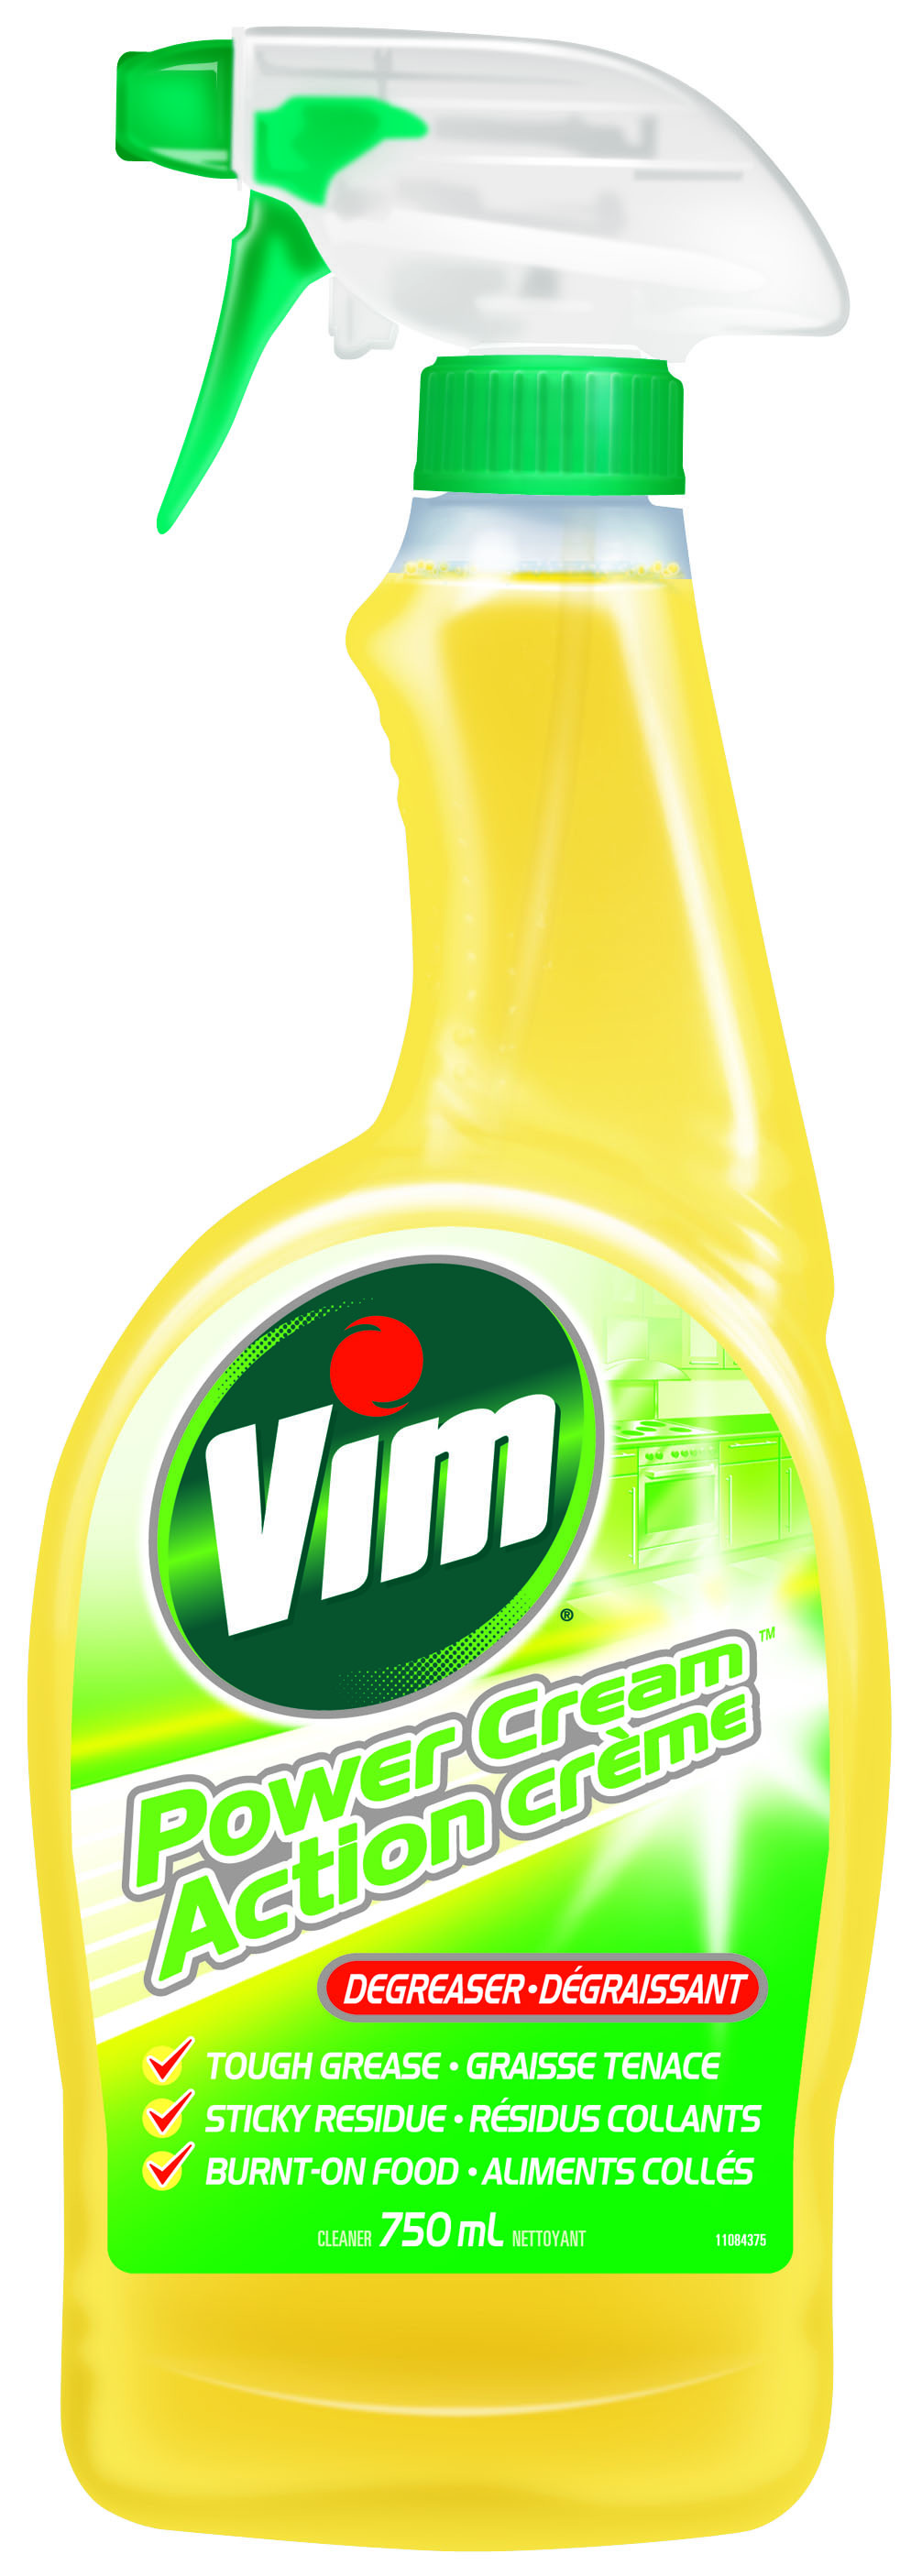 vim power cream spray reviews in household cleaning clean your home in an afternoon clean your home in an afternoon